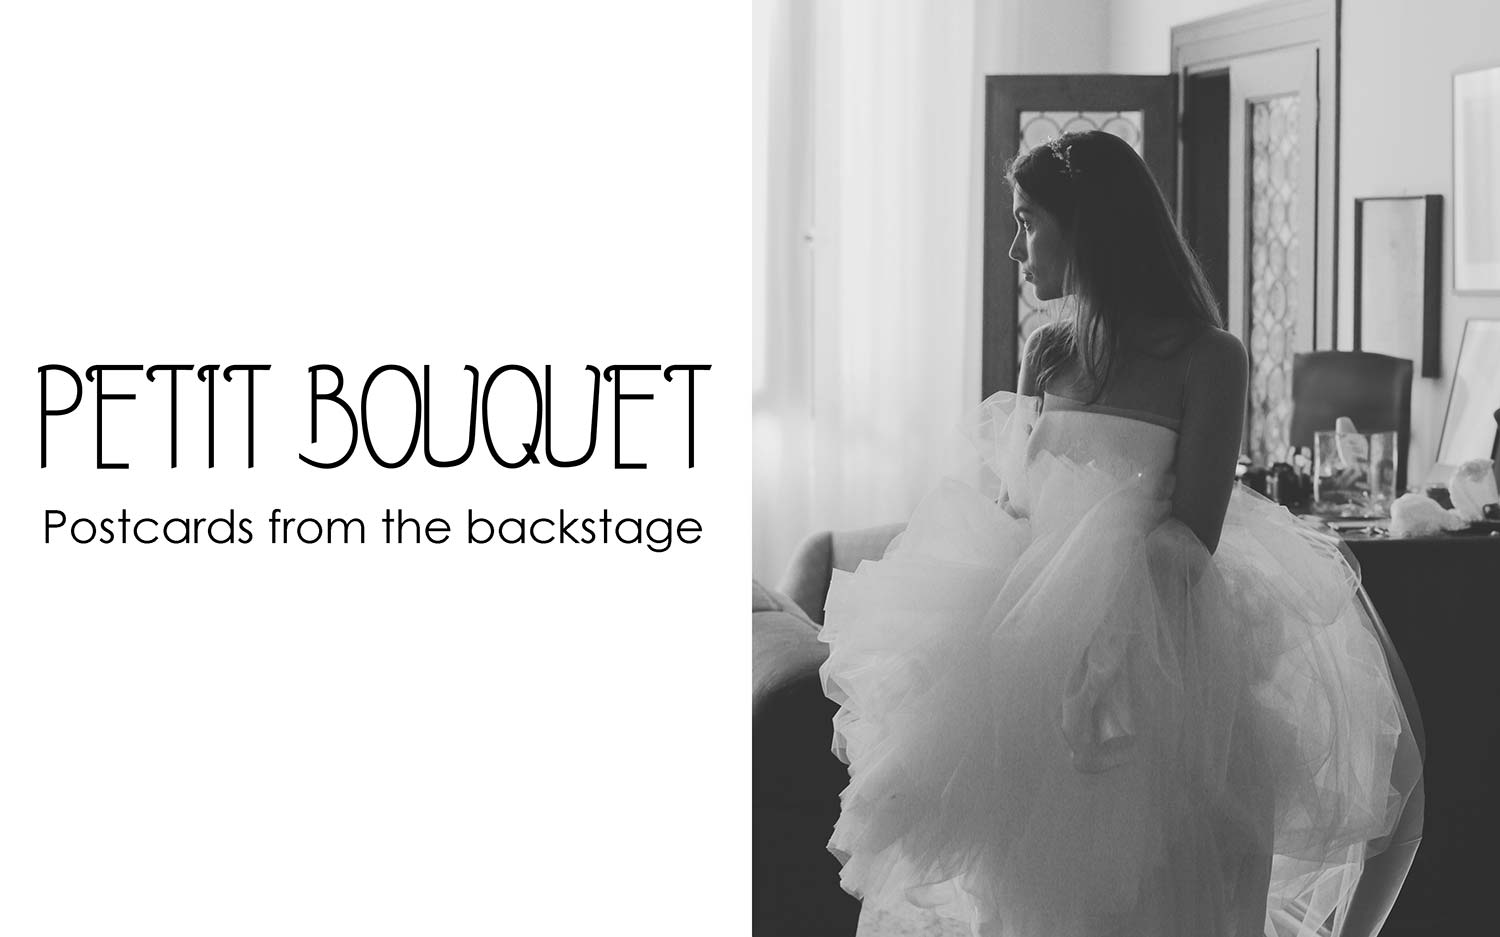 Petit Bouquet - Postacards from the backstage